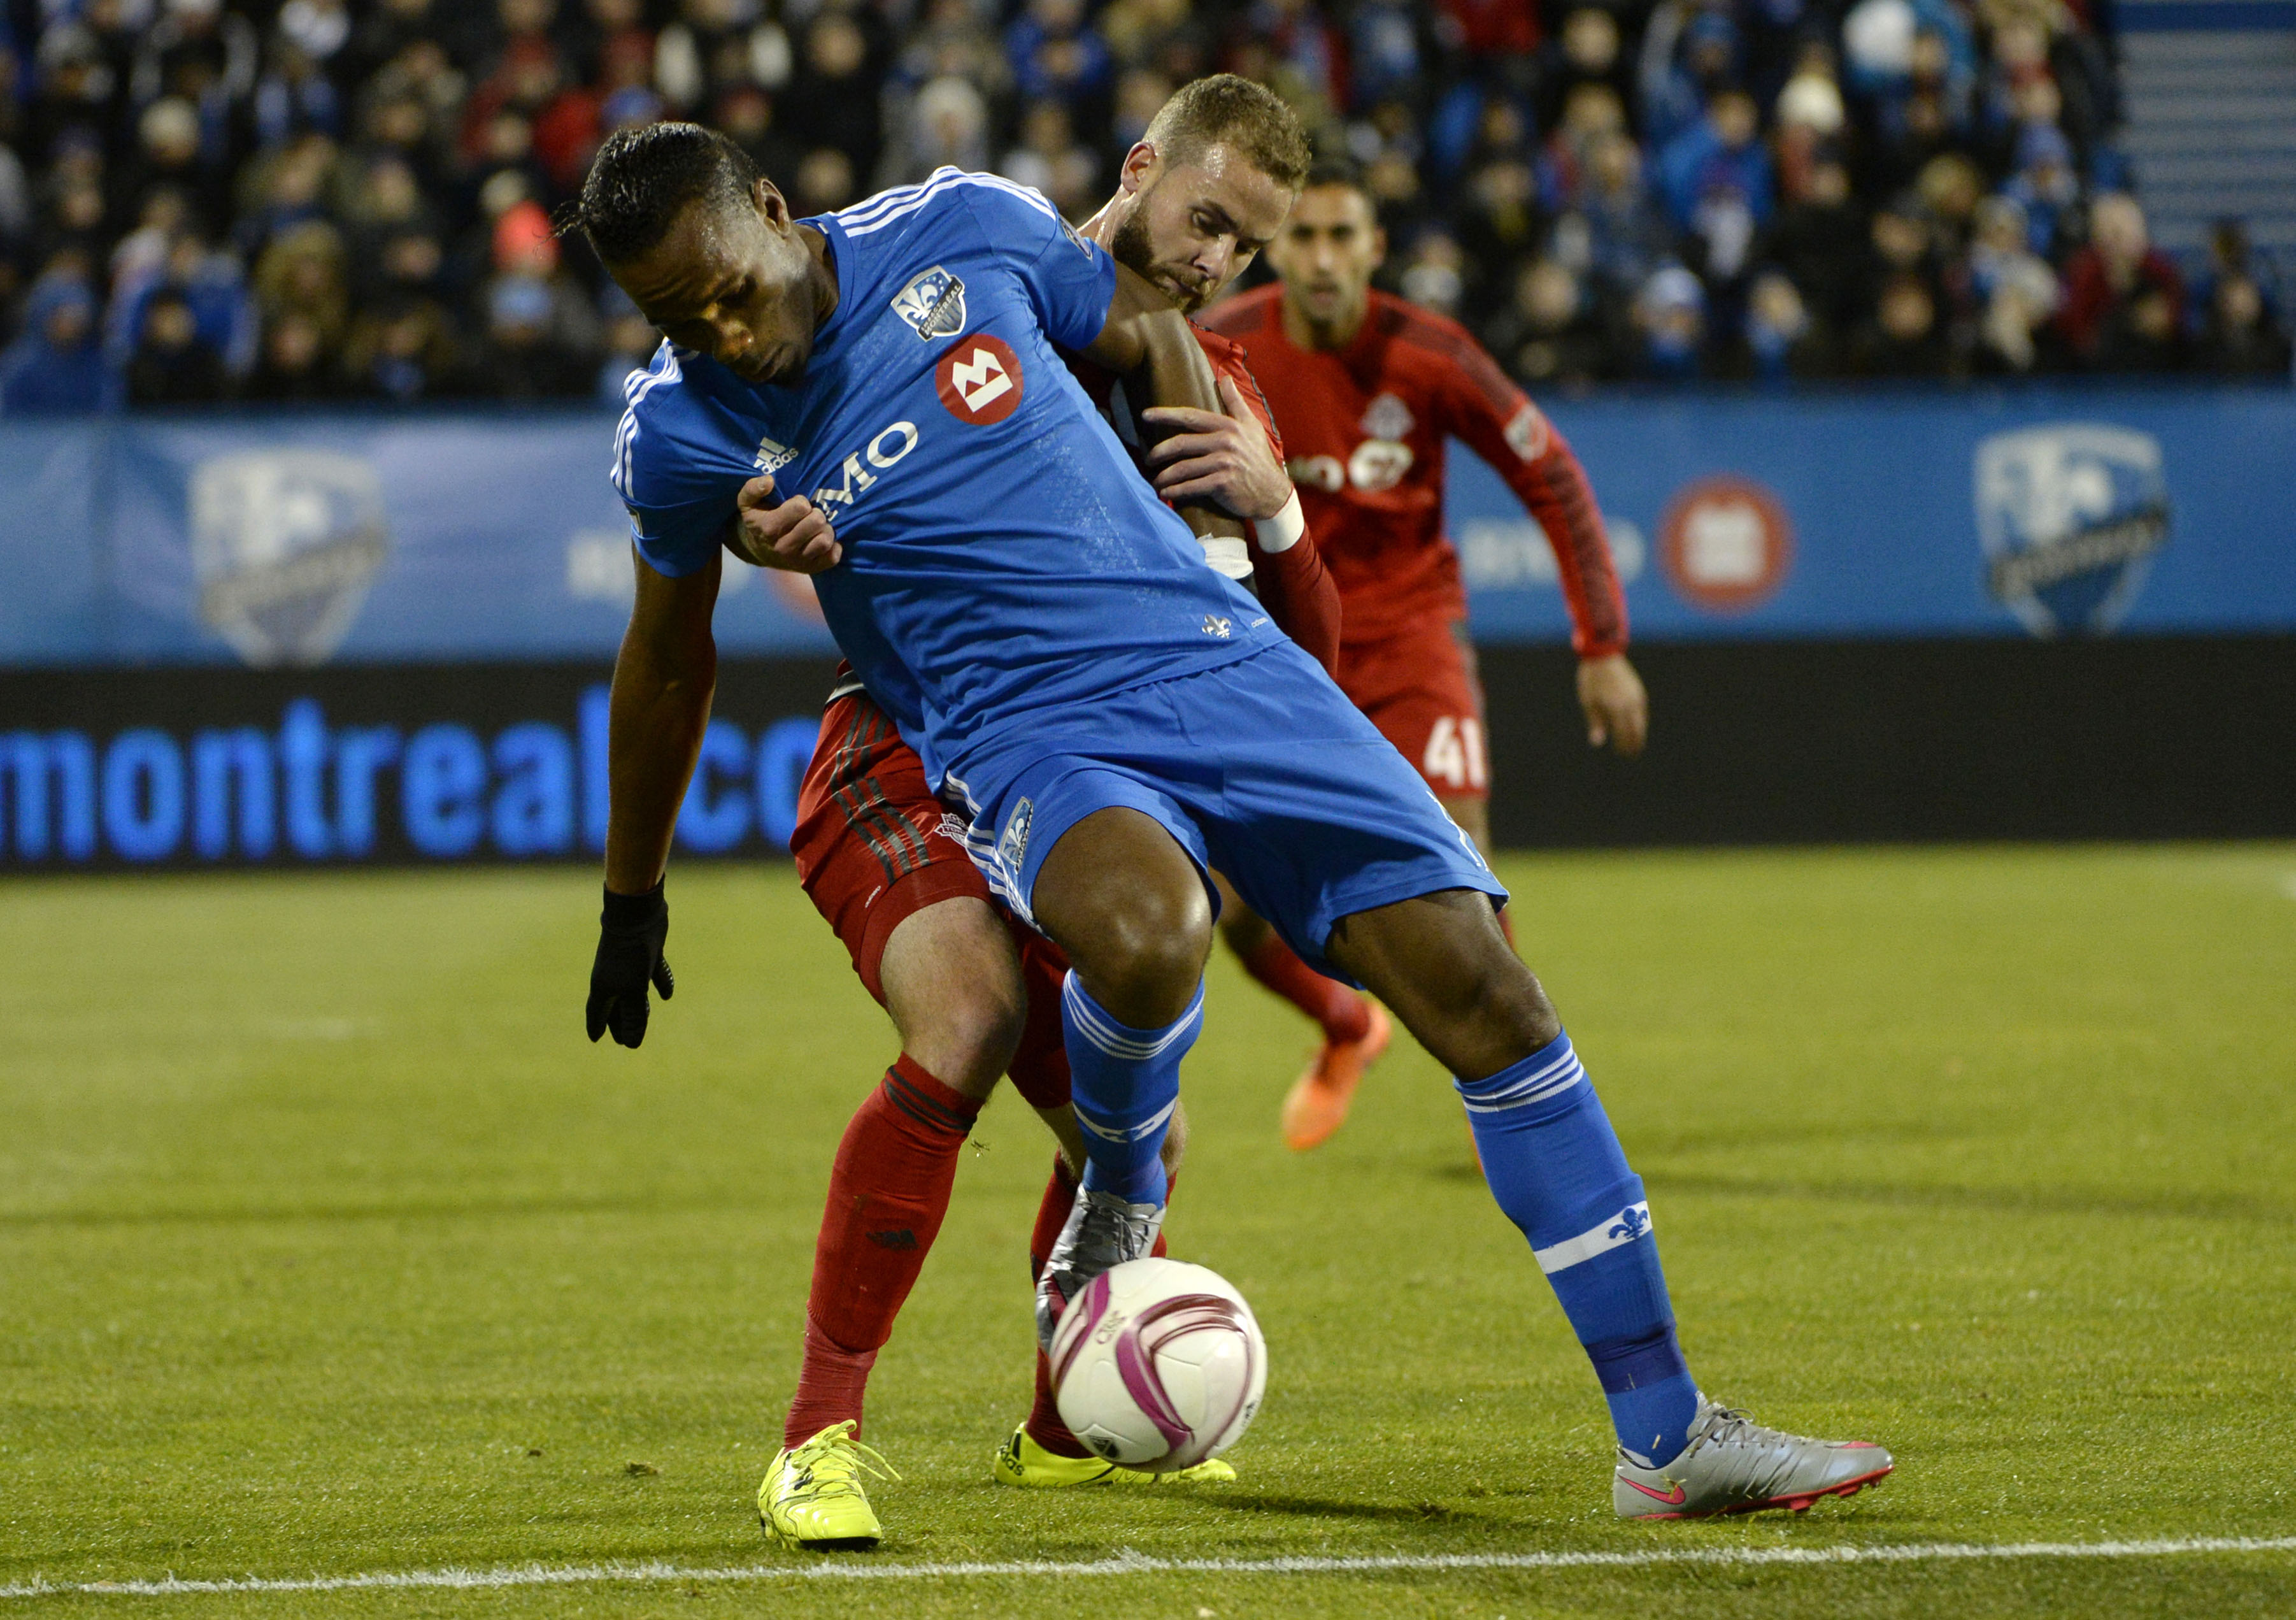 Oct 29, 2015; Montreal, Quebec, CAN; Montreal Impact forward Didier Drogba (11) plays the ball and Toronto FC defender Josh Williams (23) defends during the first half of a knockout round match of the 2015 MLS Cup Playoffs at Stade Saputo. Mandatory Credit: Eric Bolte-USA TODAY Sports